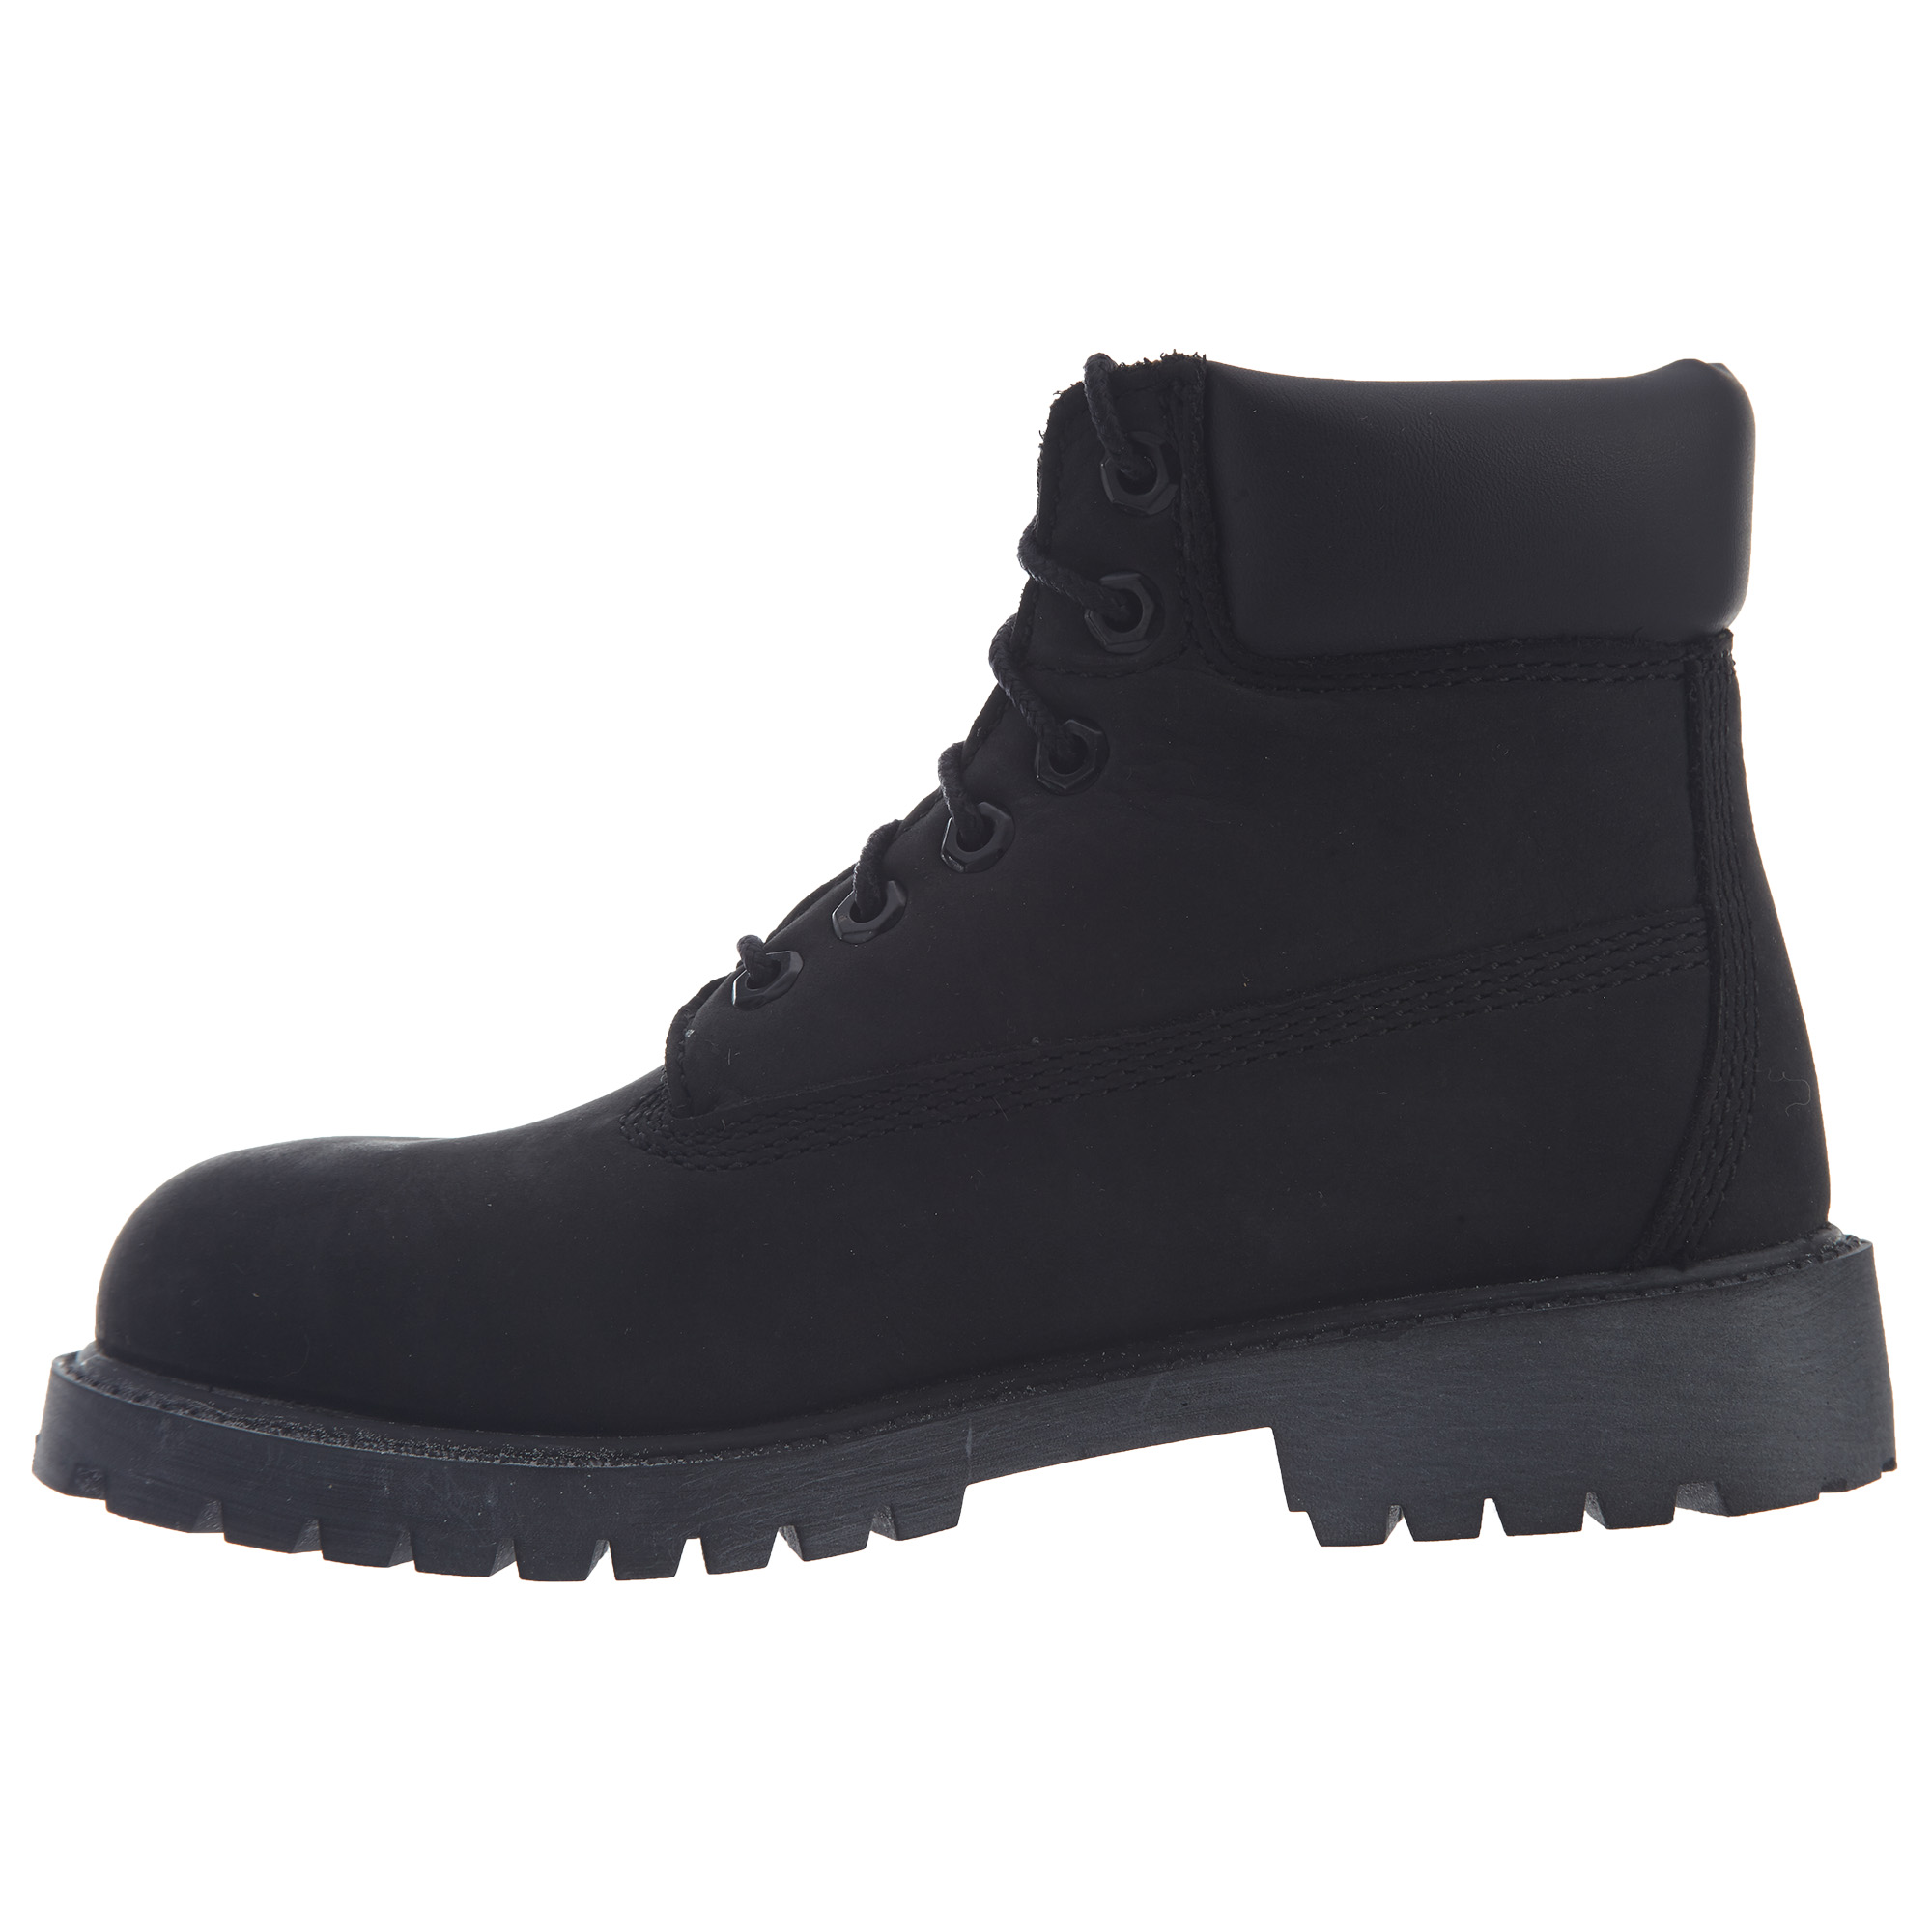 Timberland 6-inch Premium Waterproof Boot Youth Nubuck Black 12707 Kids' Clothing, Shoes & Accs Kids' Clothing, Shoes & Accs